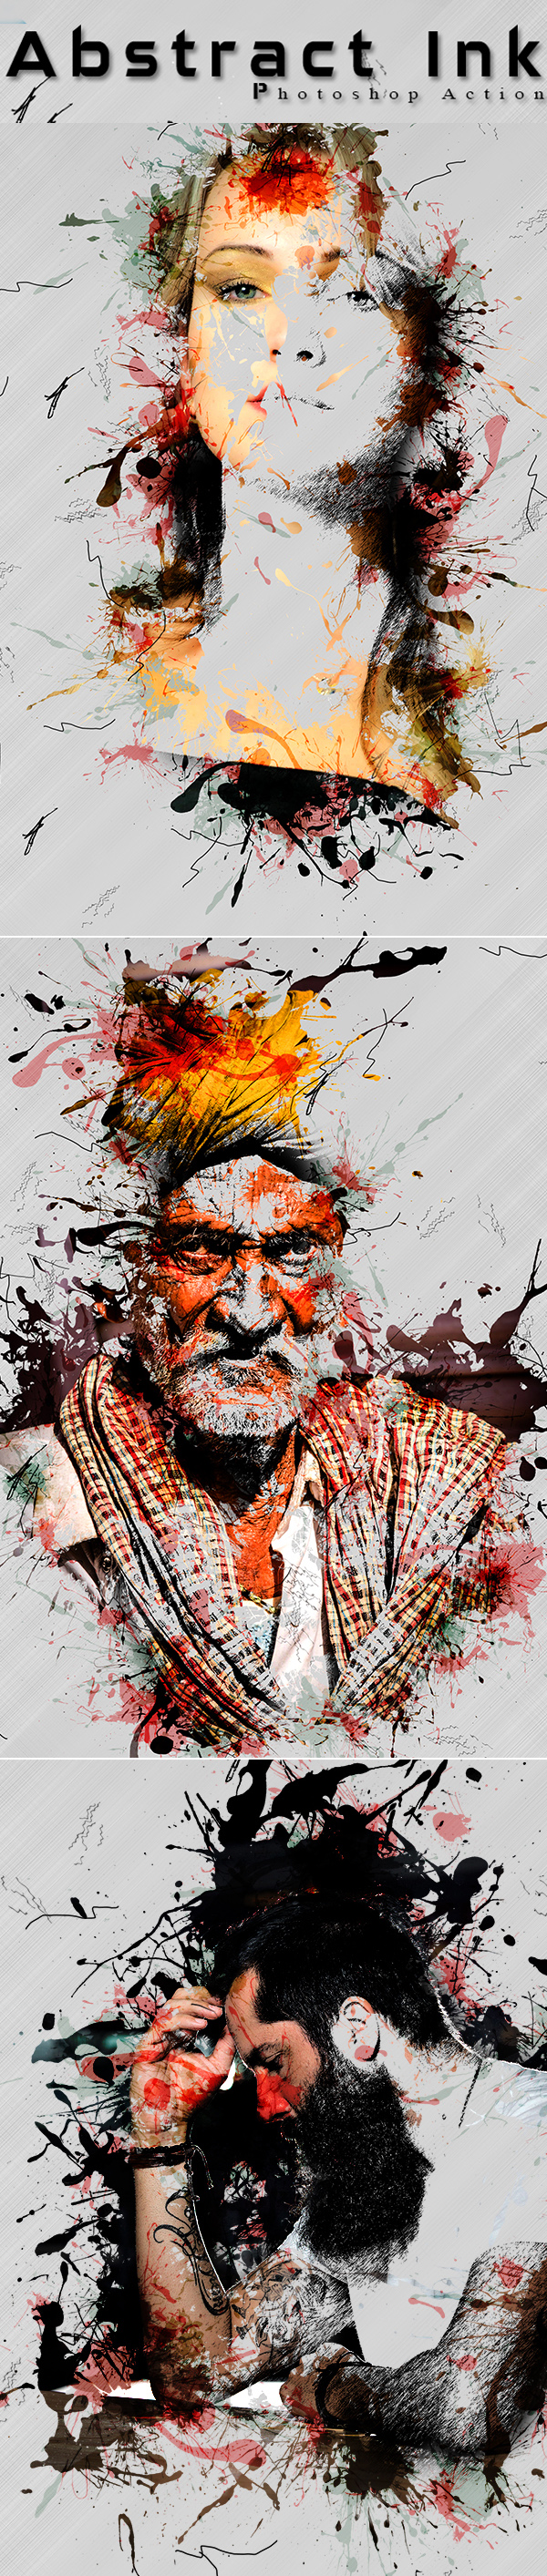 Abstract Ink Photoshop Action